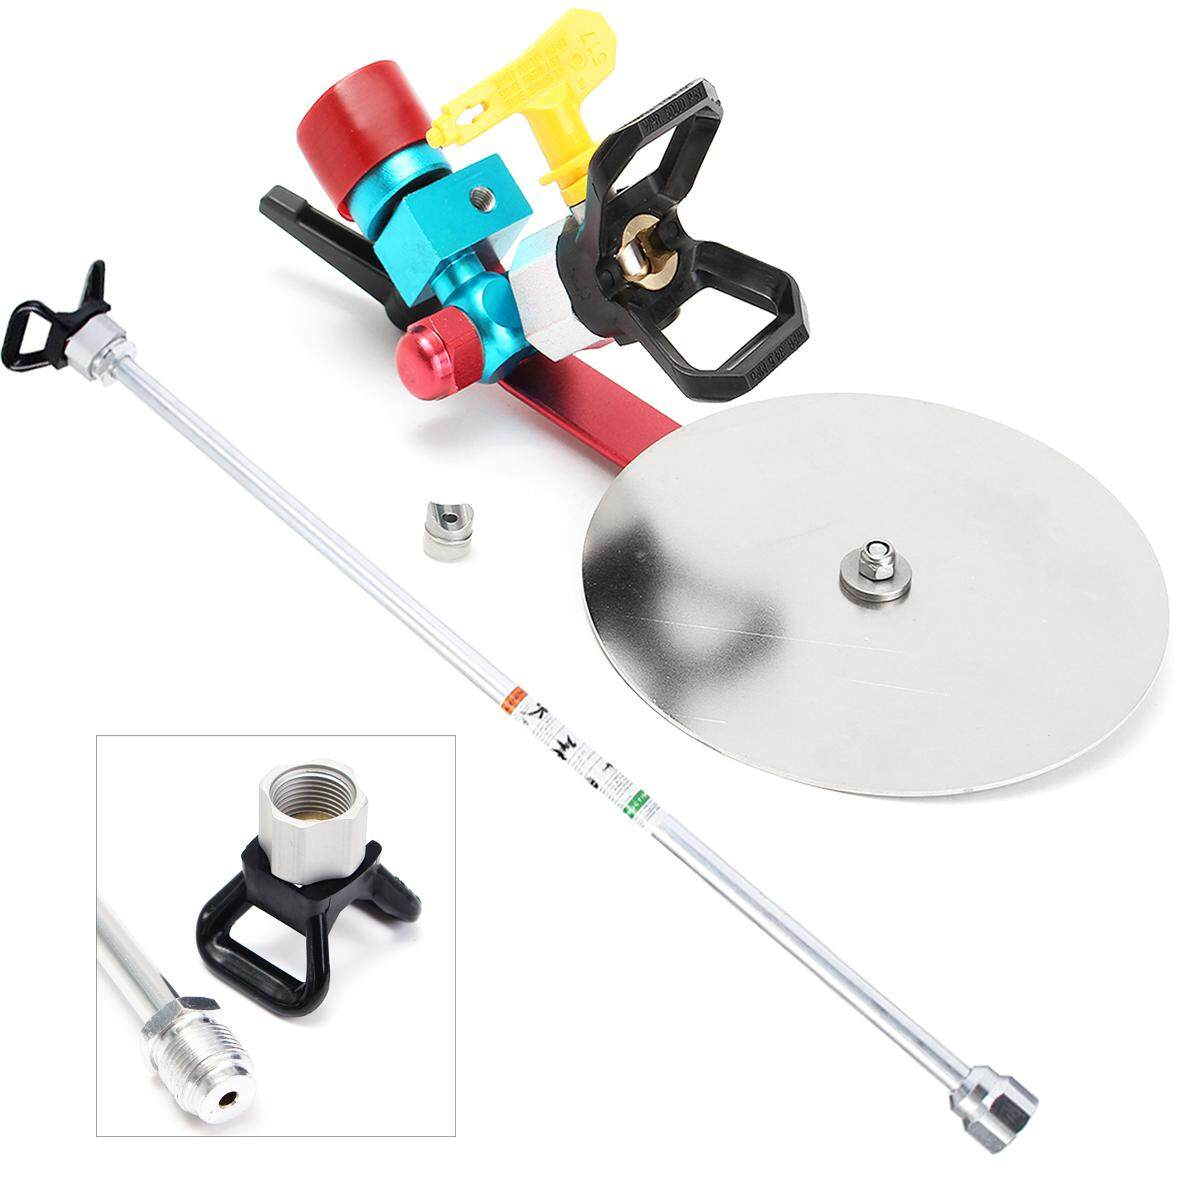 Universal Spray Guide Accessory Tool For Paint Sprayer 7/8 - intl